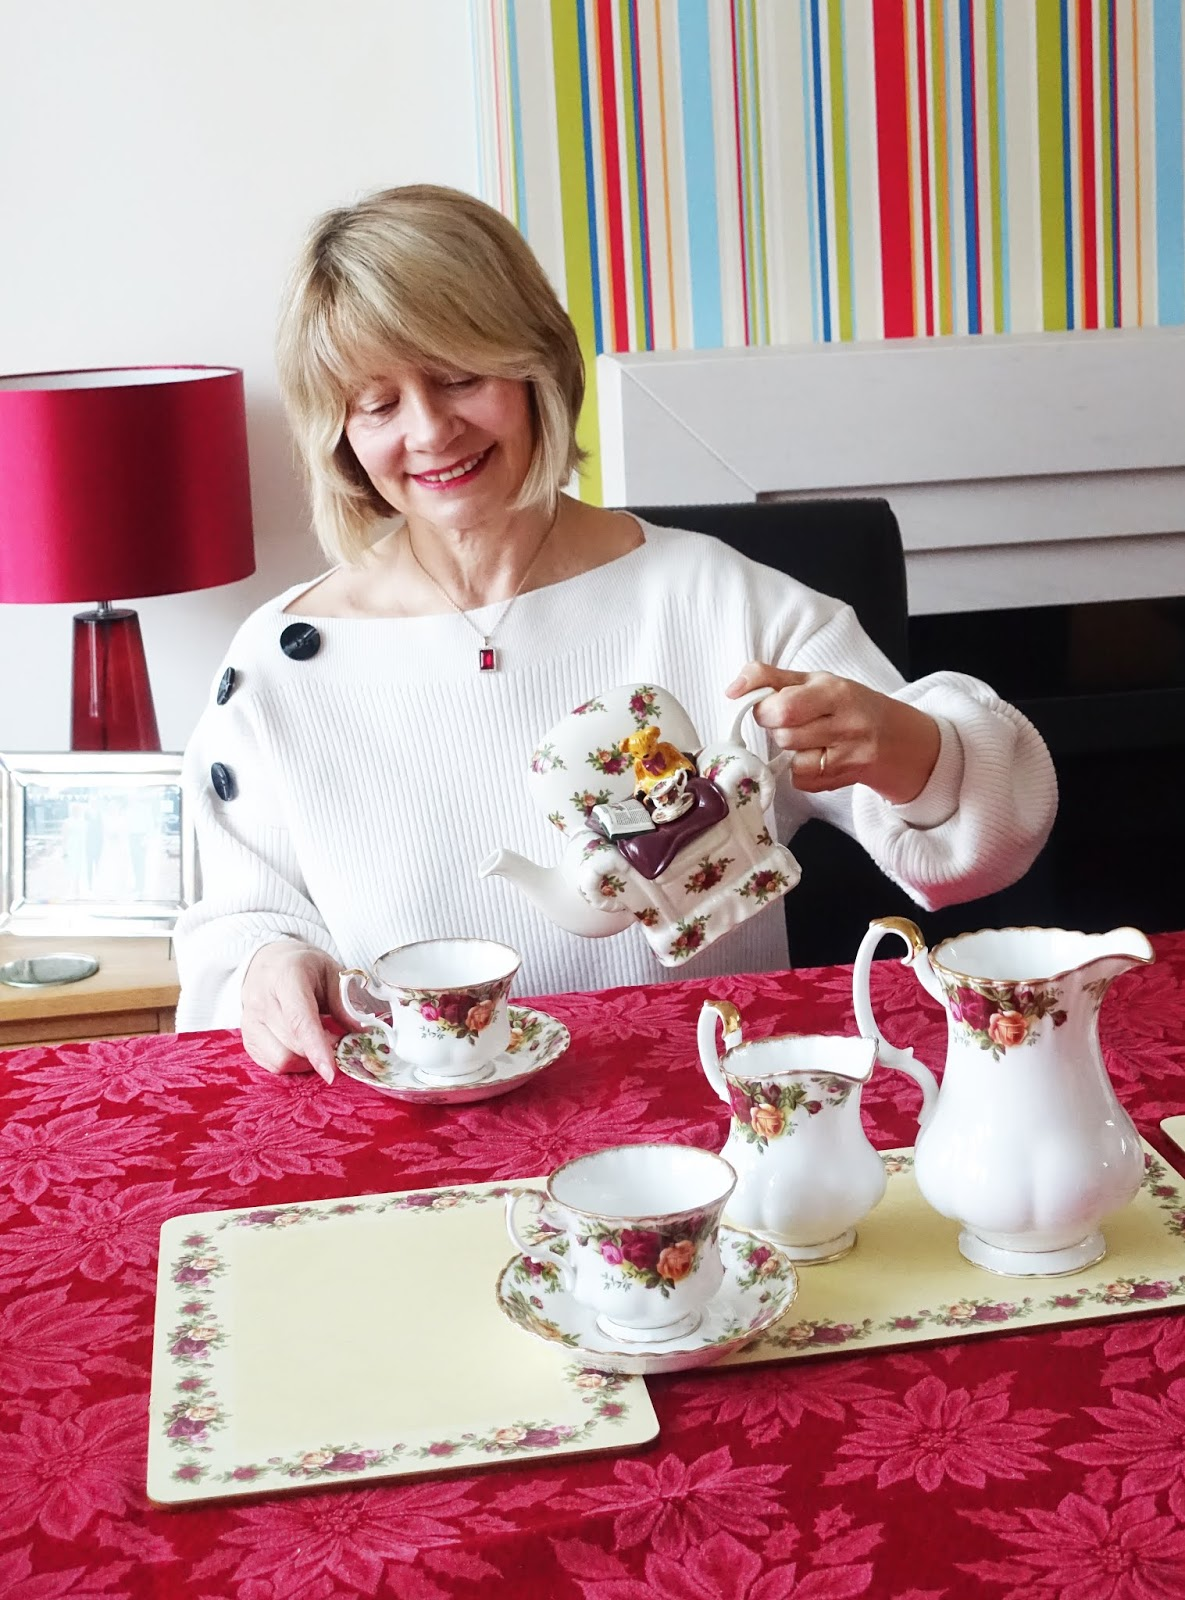 Gail Hanlon from Is This Mutton? takes tea with her Royal Albert Old Country Roses tea set